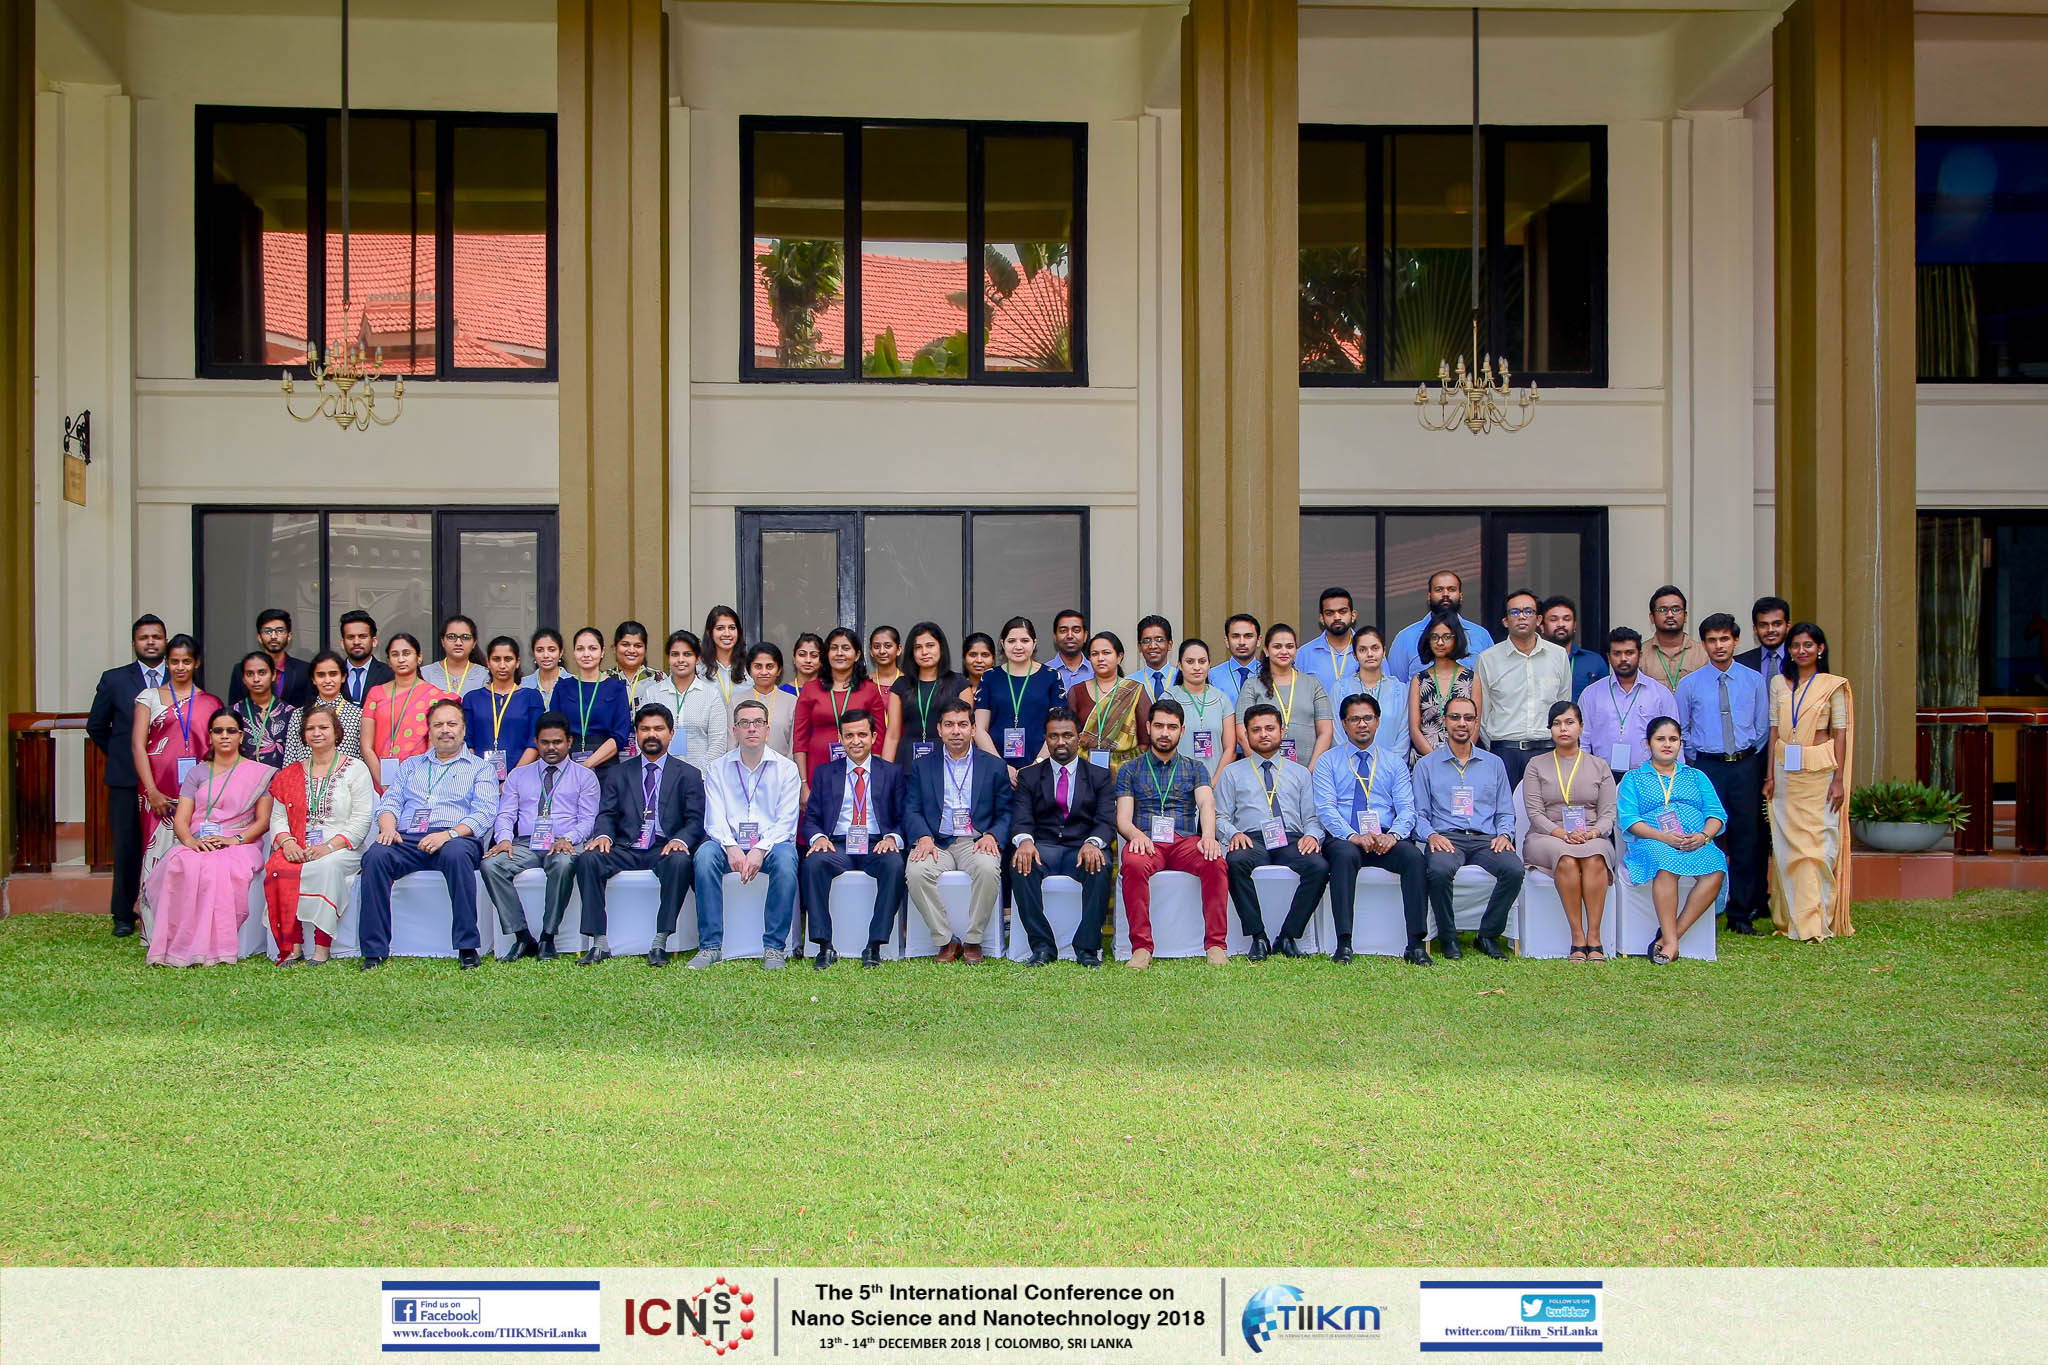 The 5th International Conference on Nano Science and Nanotechnology 2018 (ICNSNT 2018)